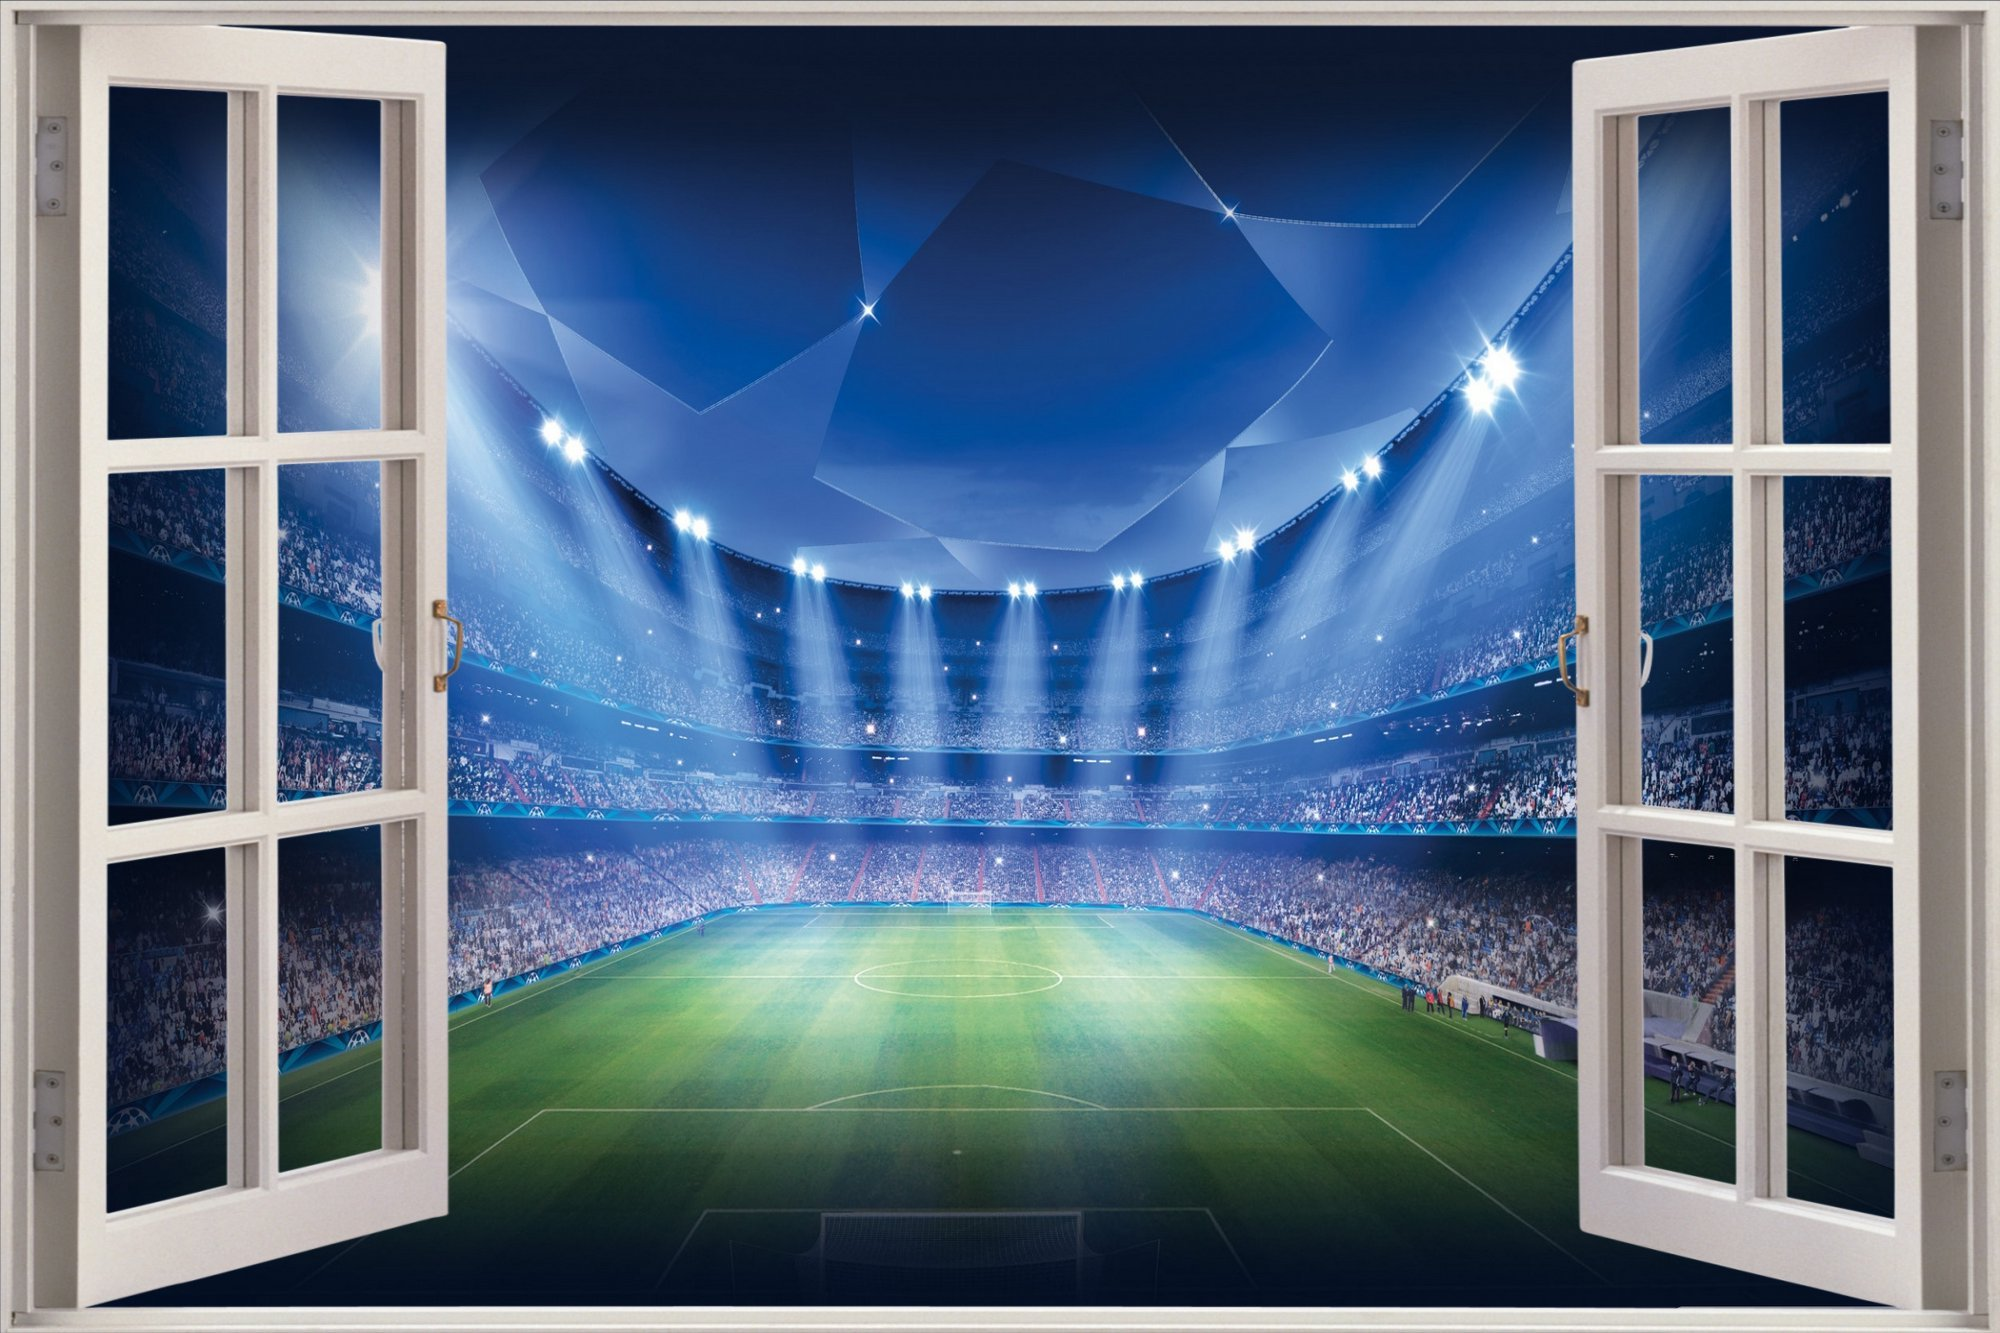 Football Wall Mural Football Stadium Photo Wallpaper Boys: [46+] Football Field Wallpaper For Home On WallpaperSafari